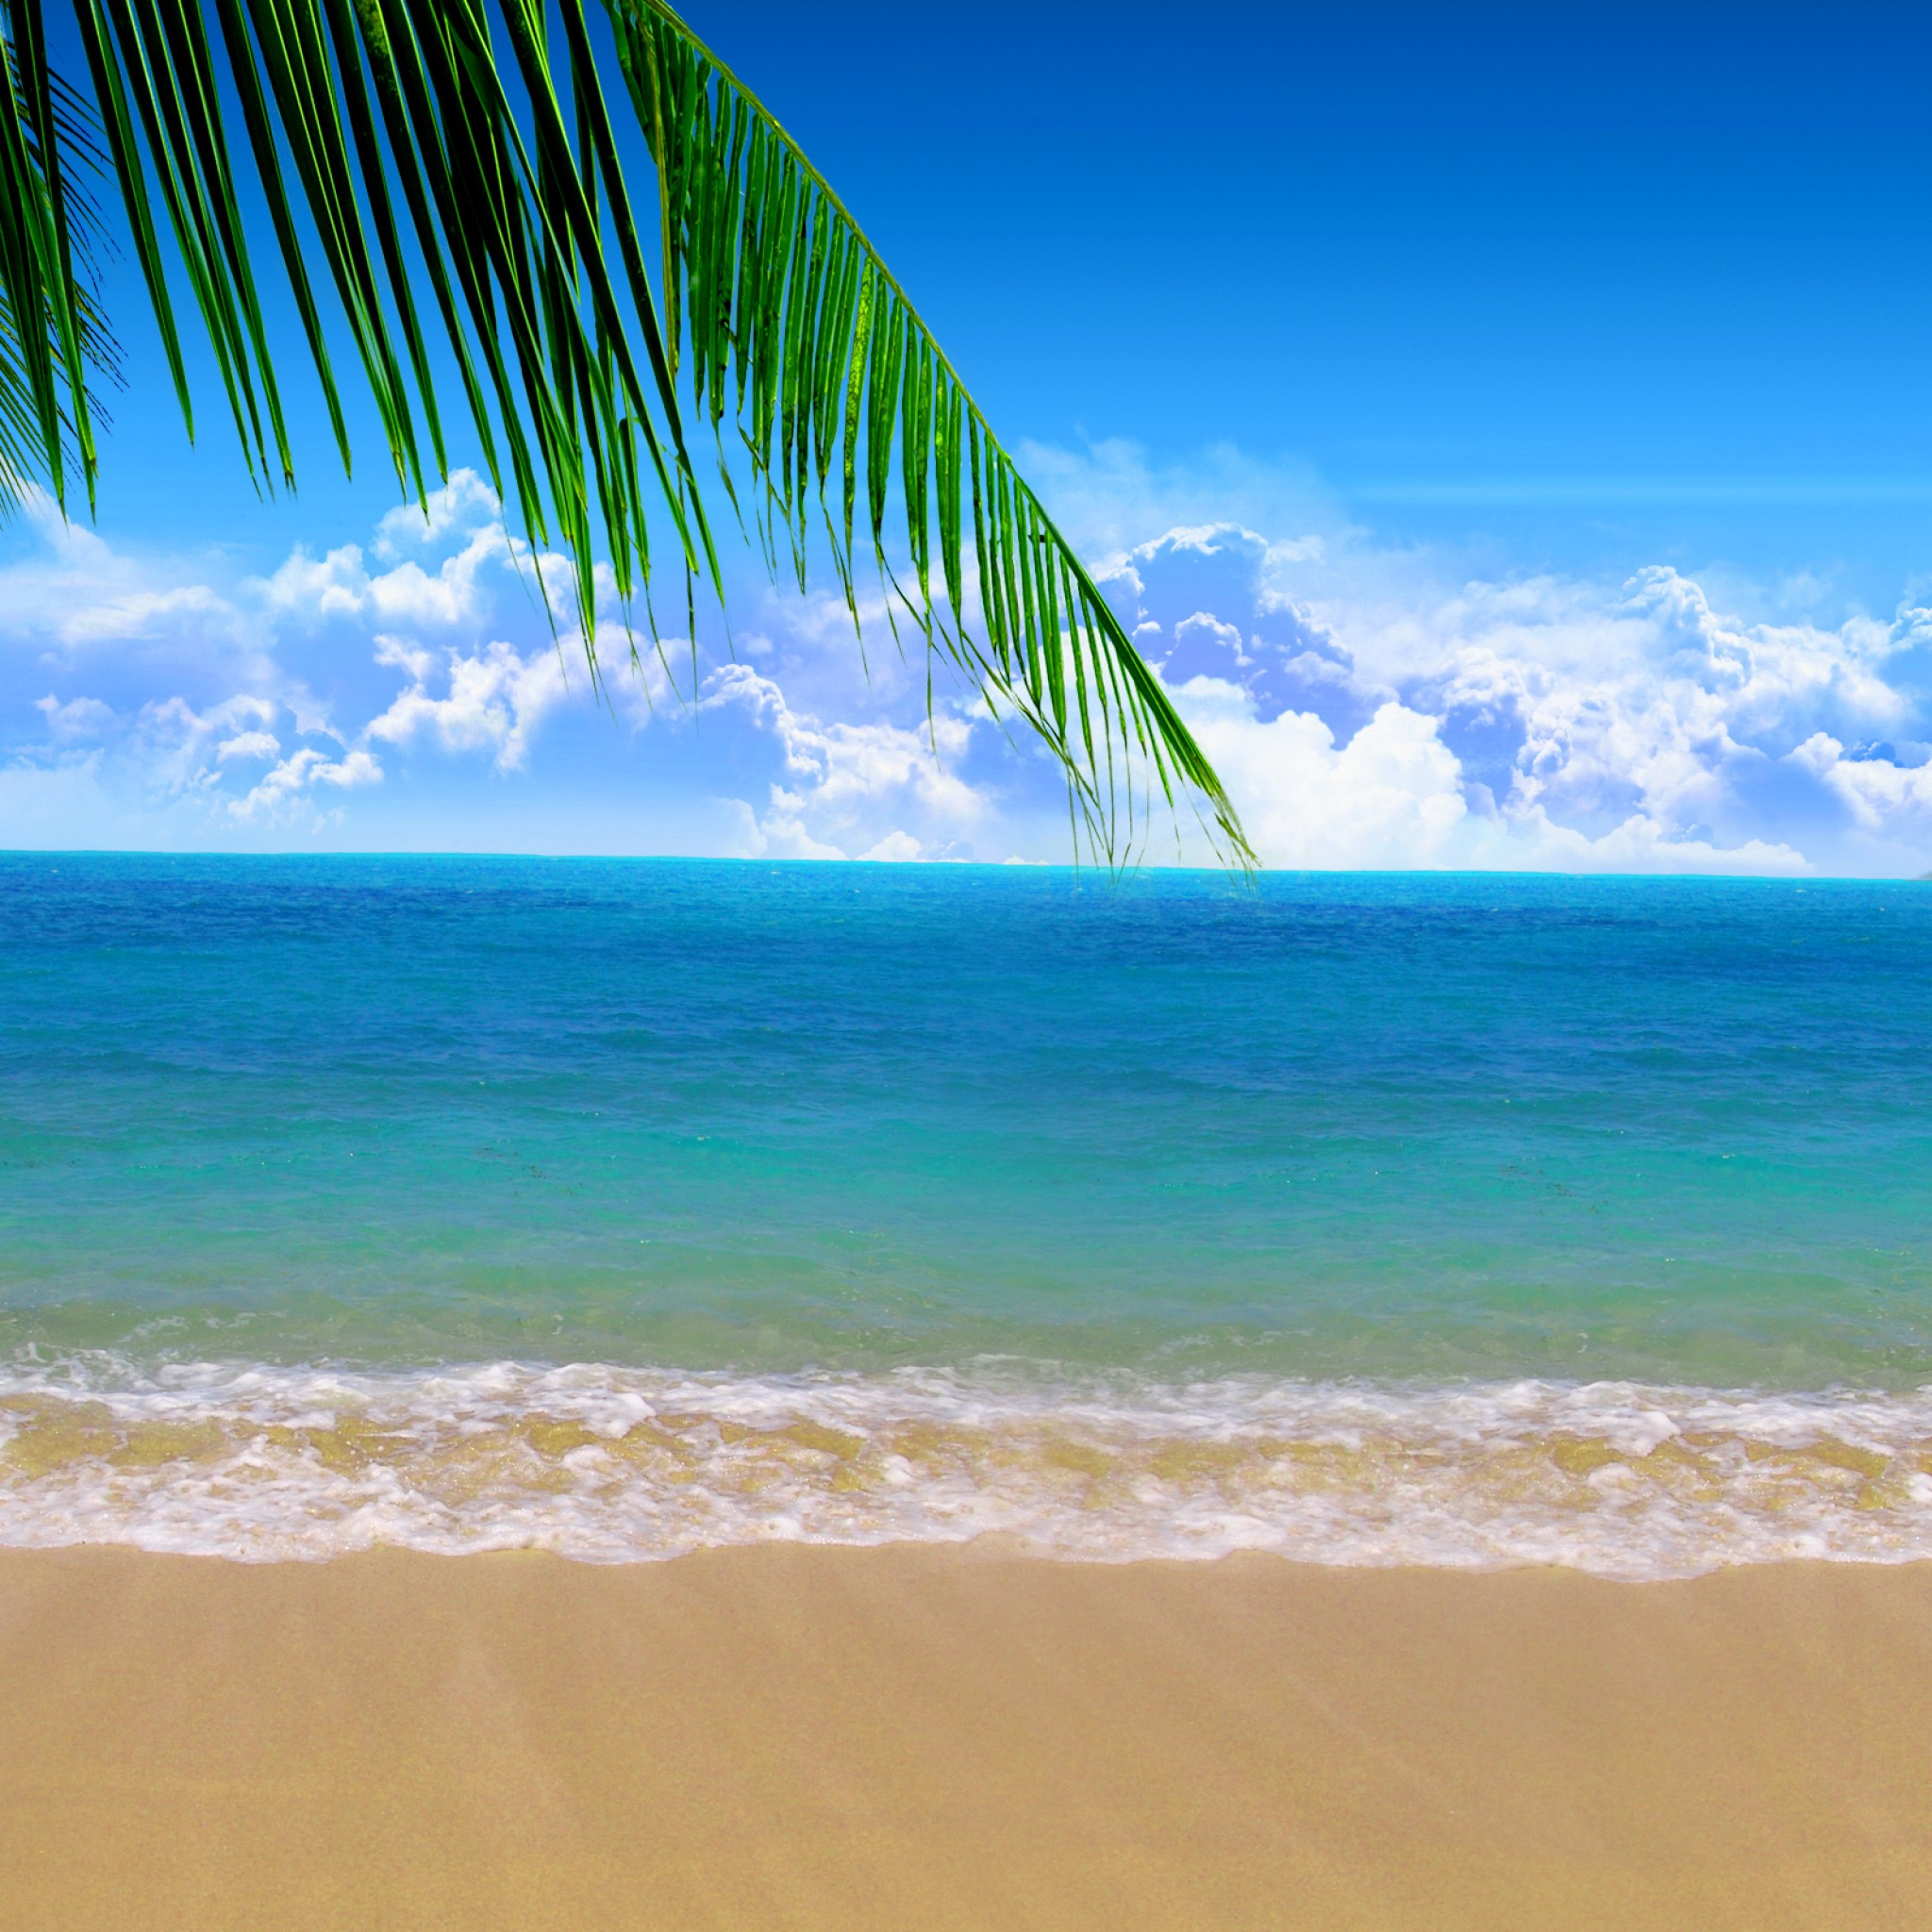 Beach iPad Air Wallpaper Download iPhone Wallpapers iPad wallpapers 2048x2048